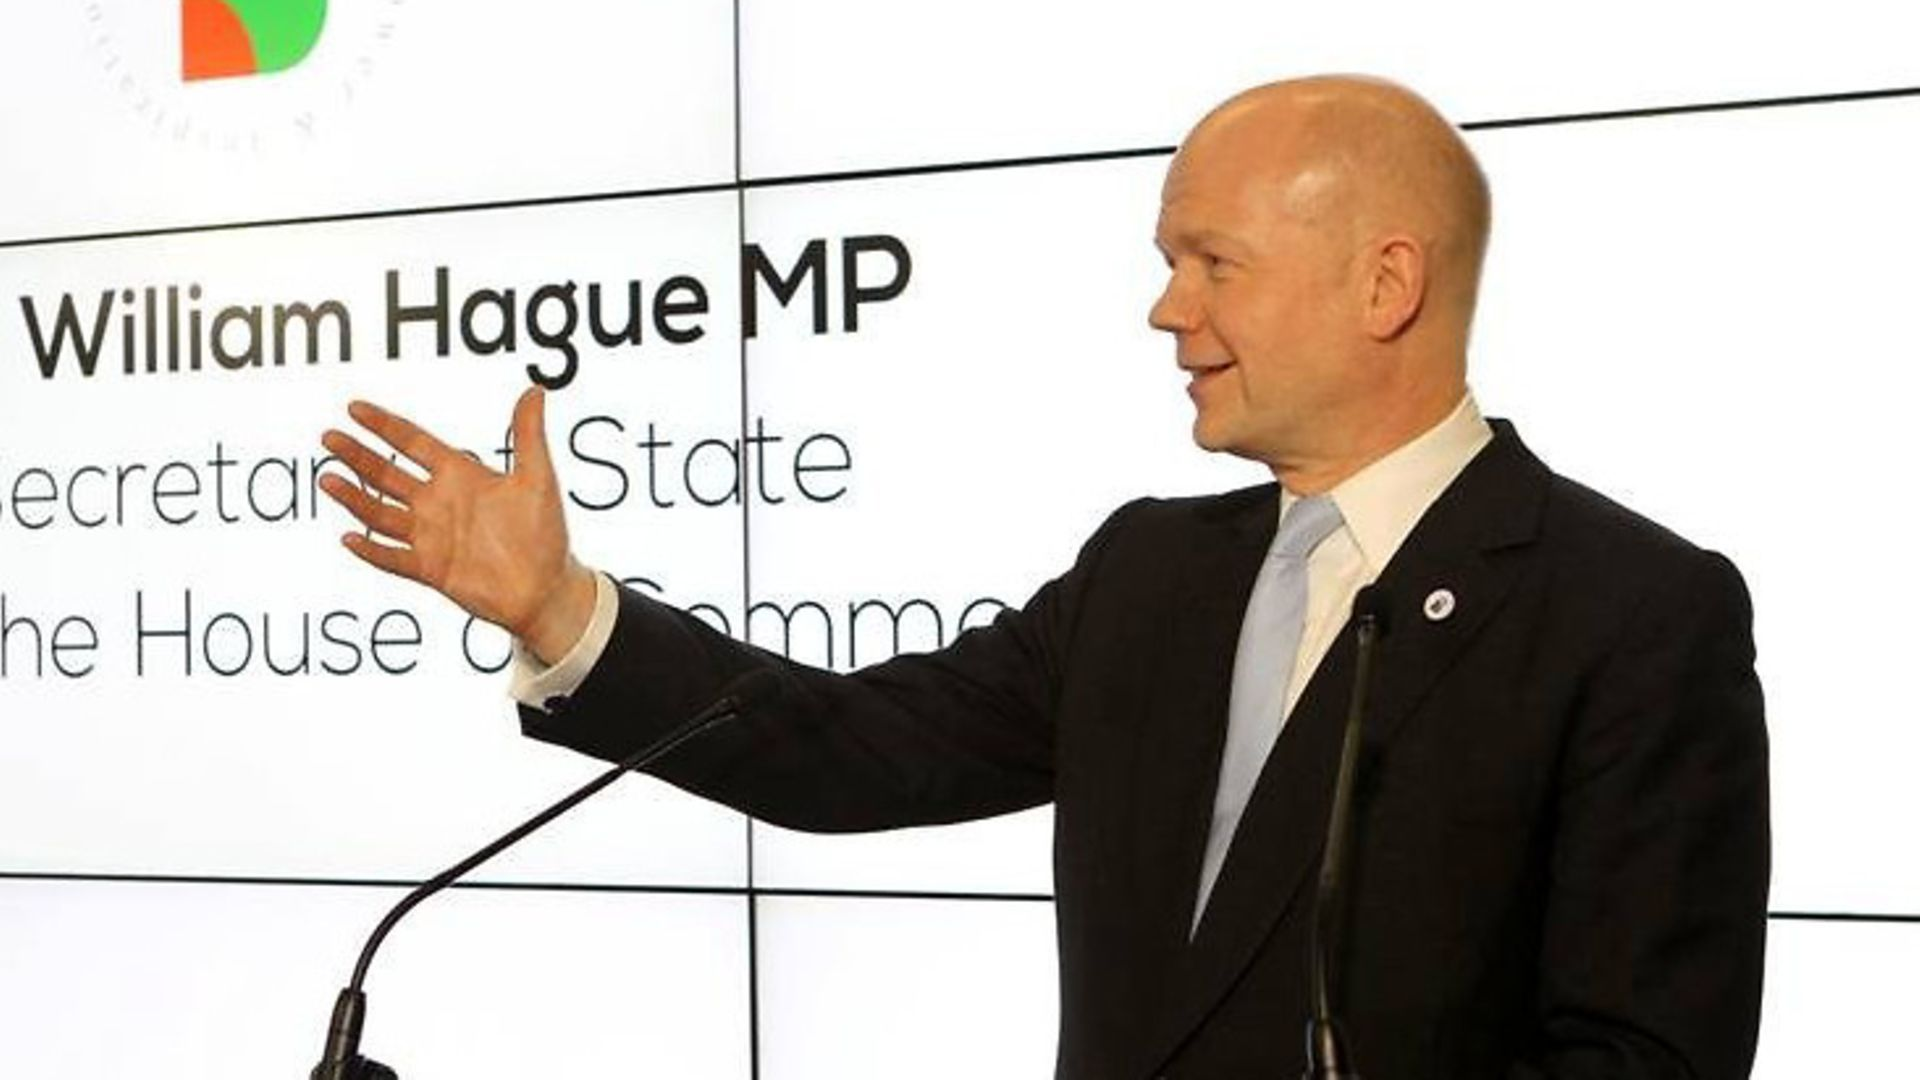 William Hague delivers a speech. - Credit: PA